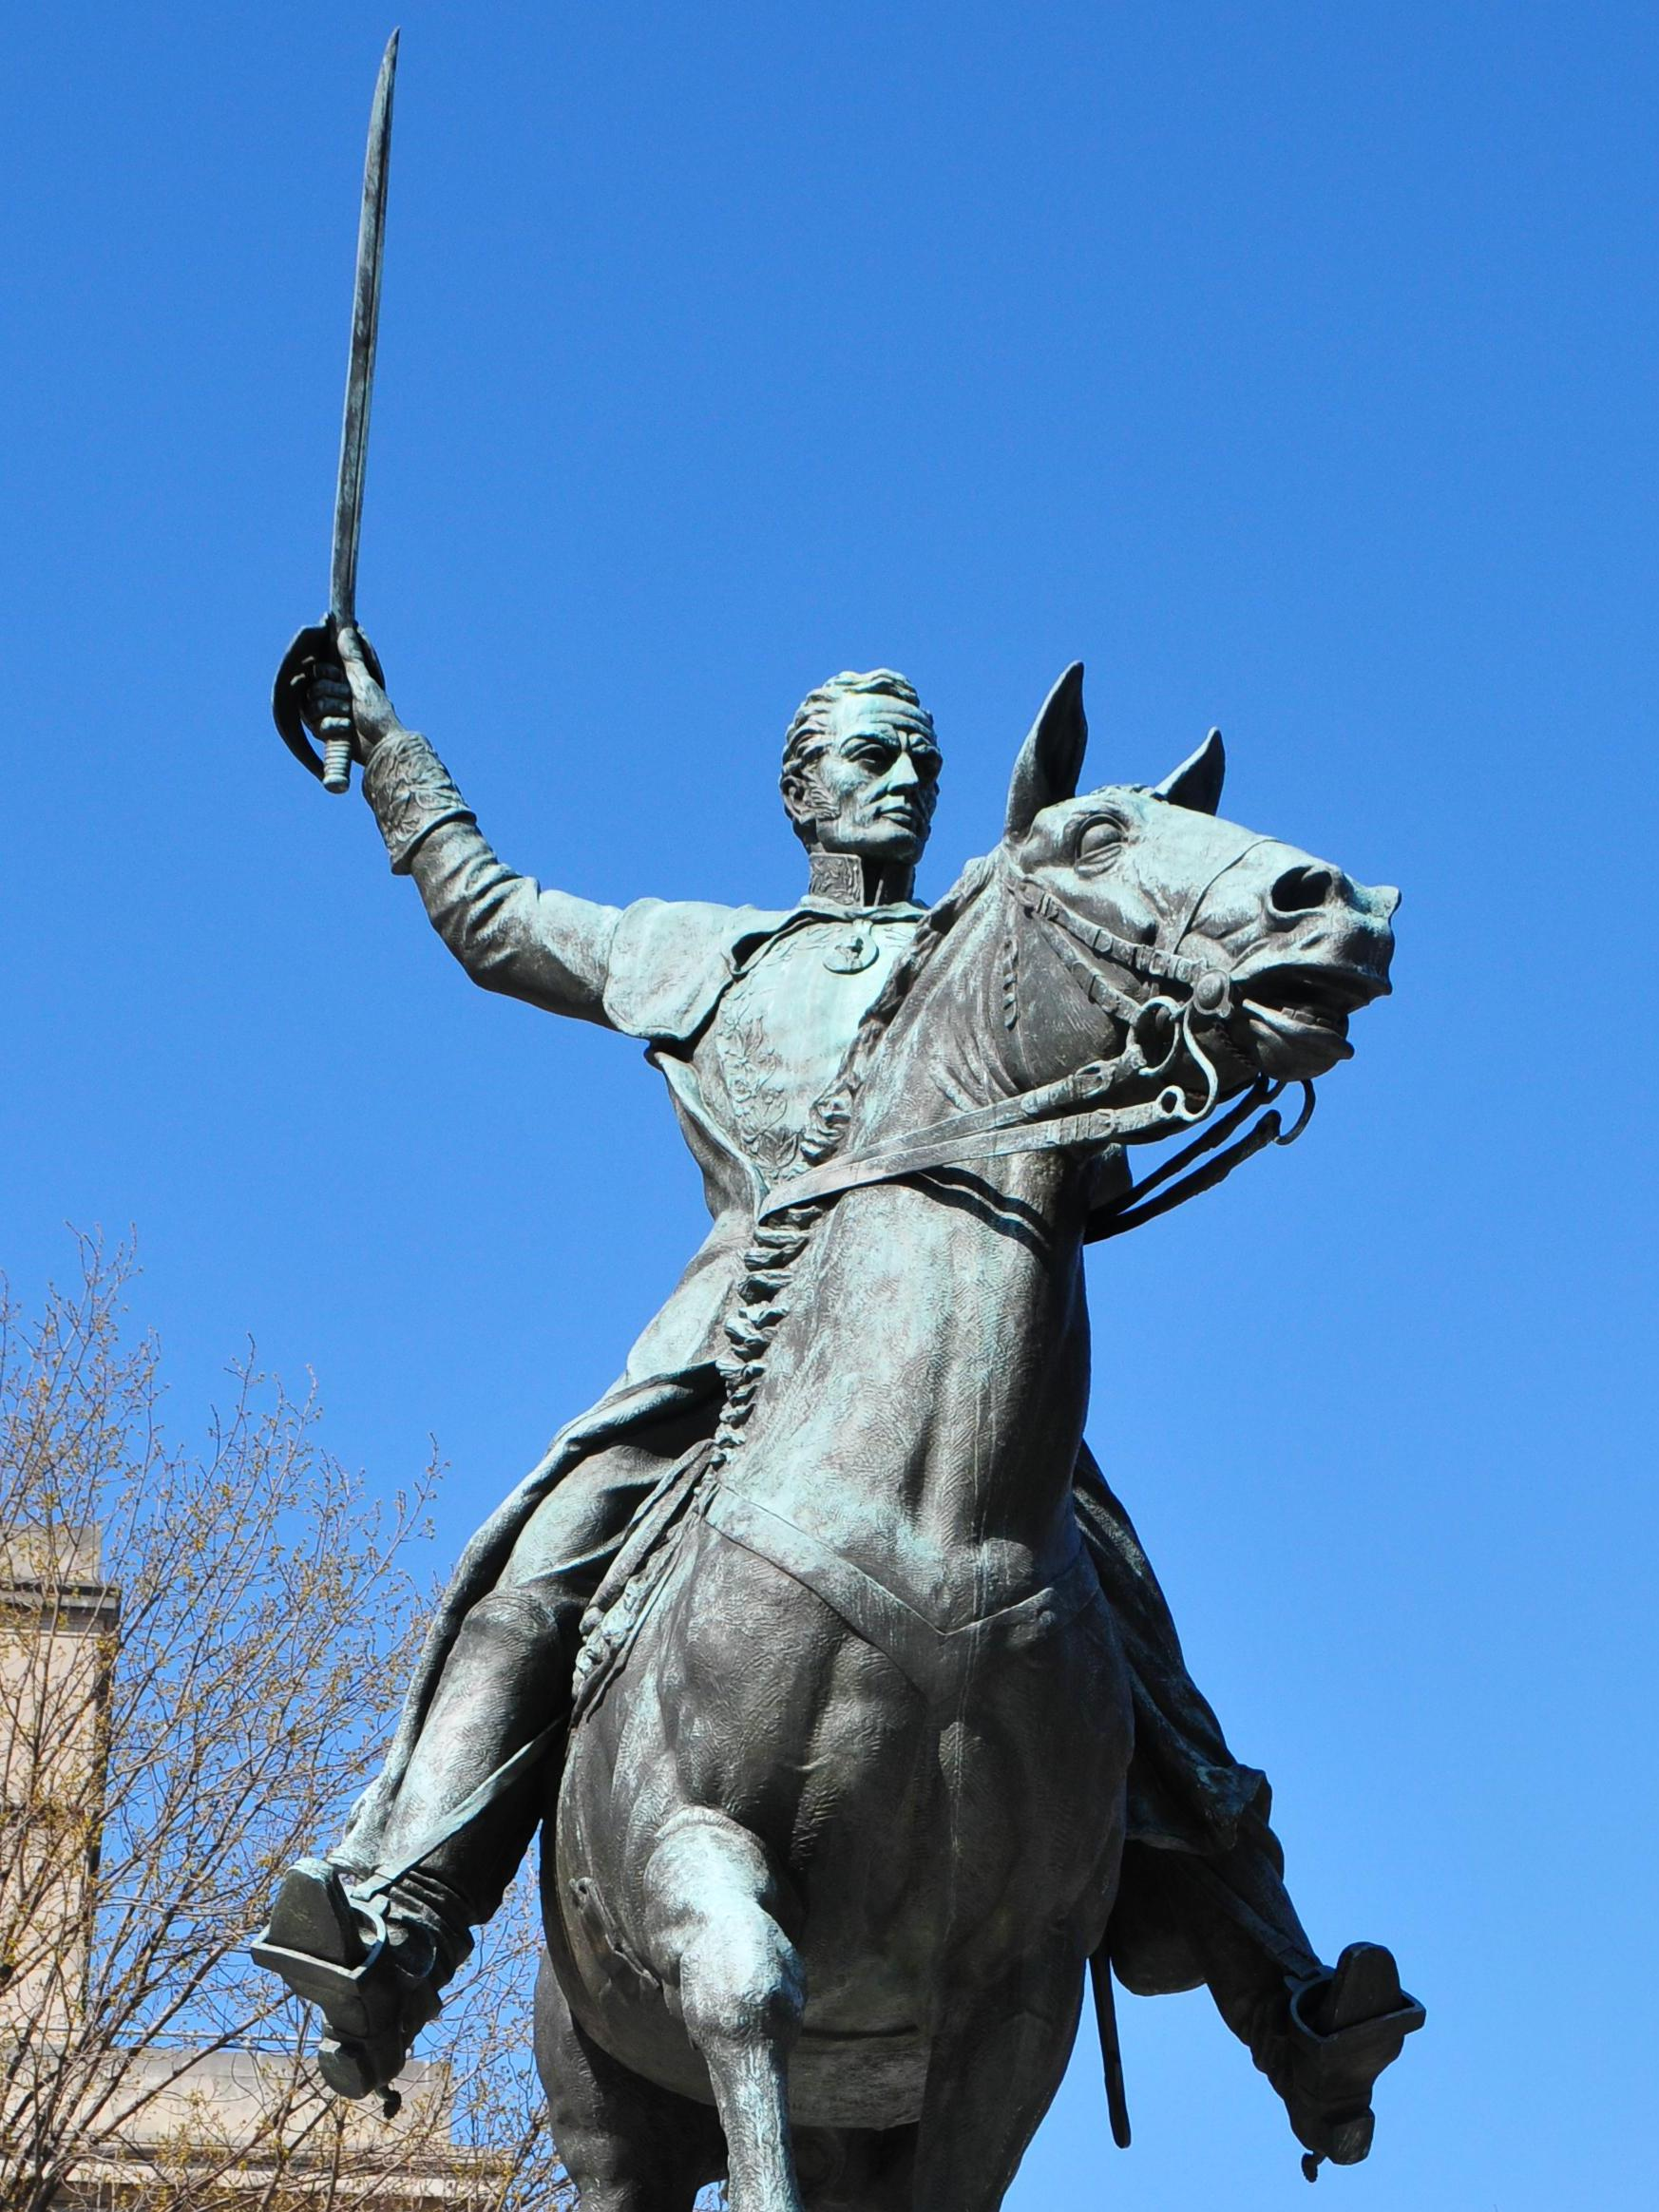 http://upload.wikimedia.org/wikipedia/commons/9/9d/Simon_Bolivar_Statue_DC.JPG